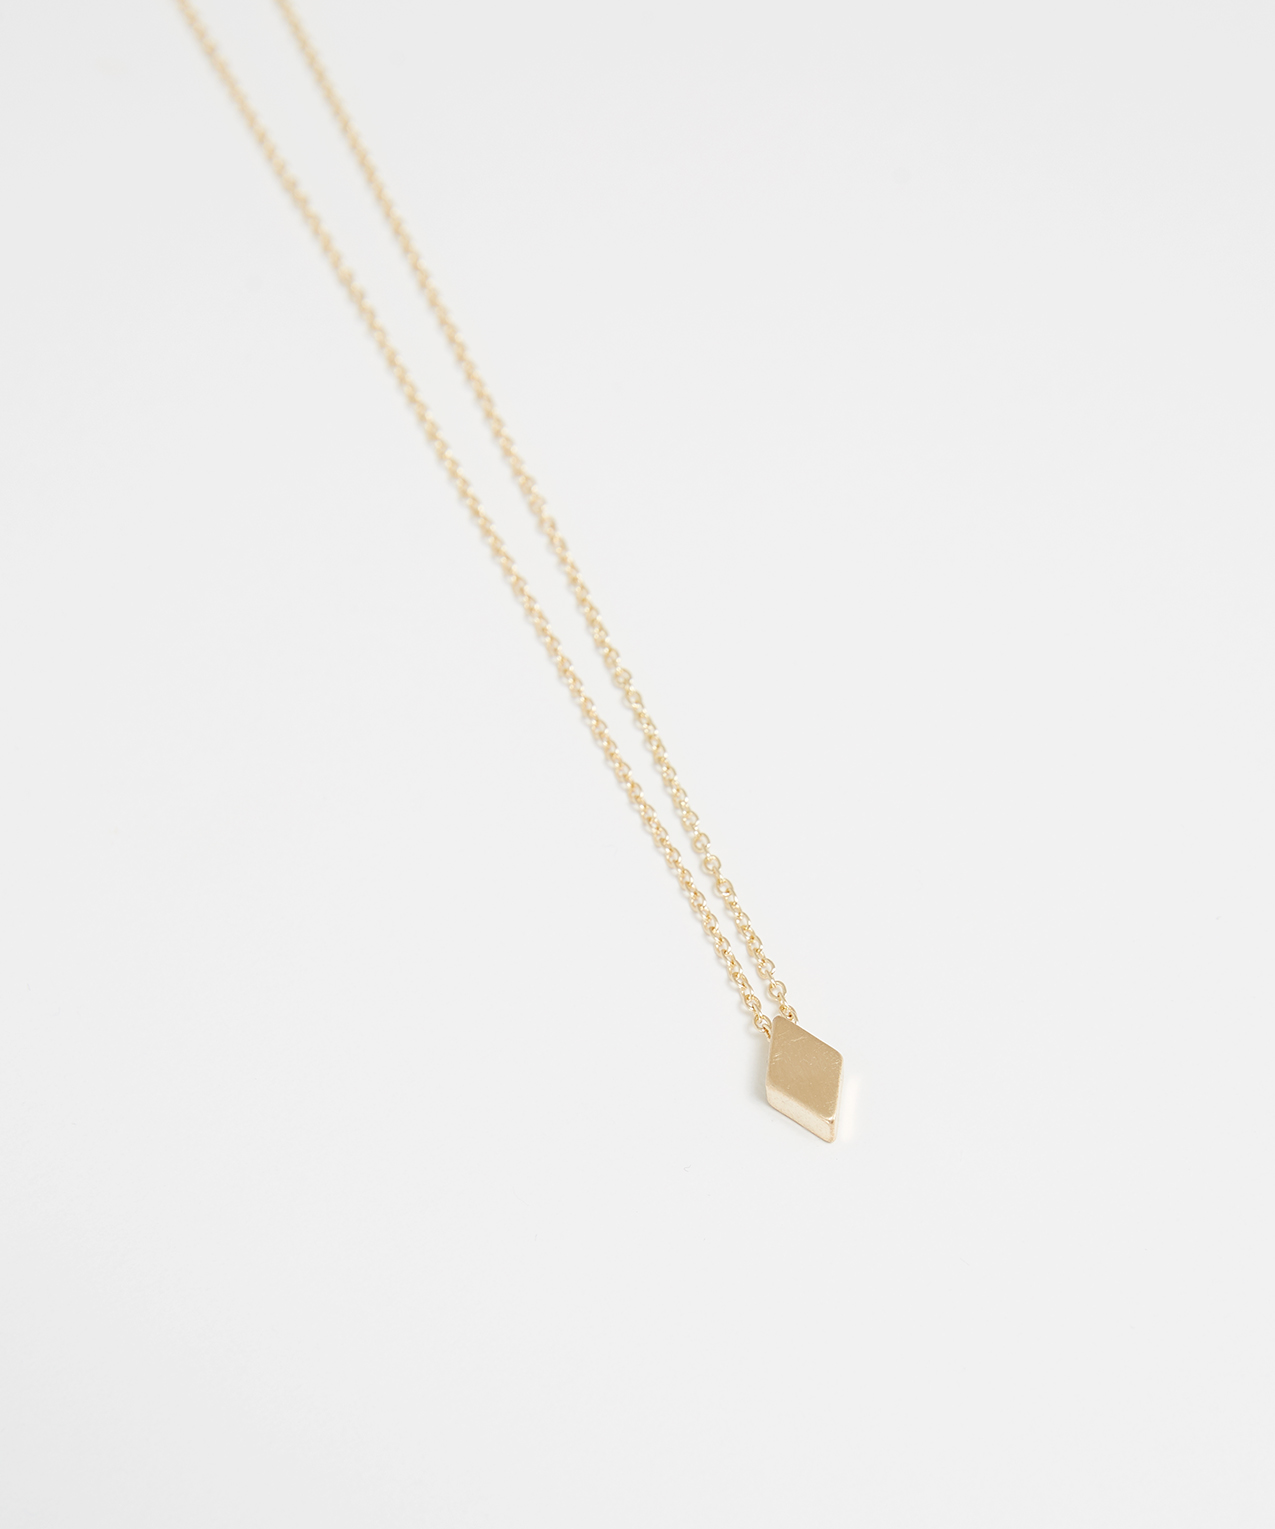 diamond necklace, GOLD, hi-res